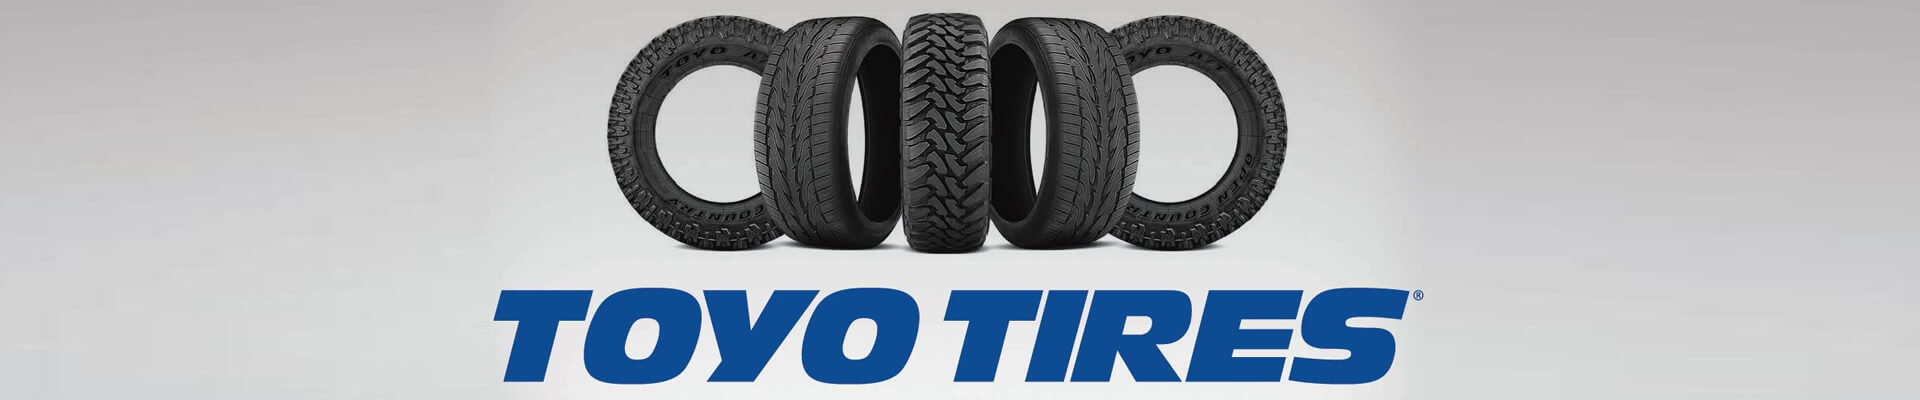 Toyo Tires Banner